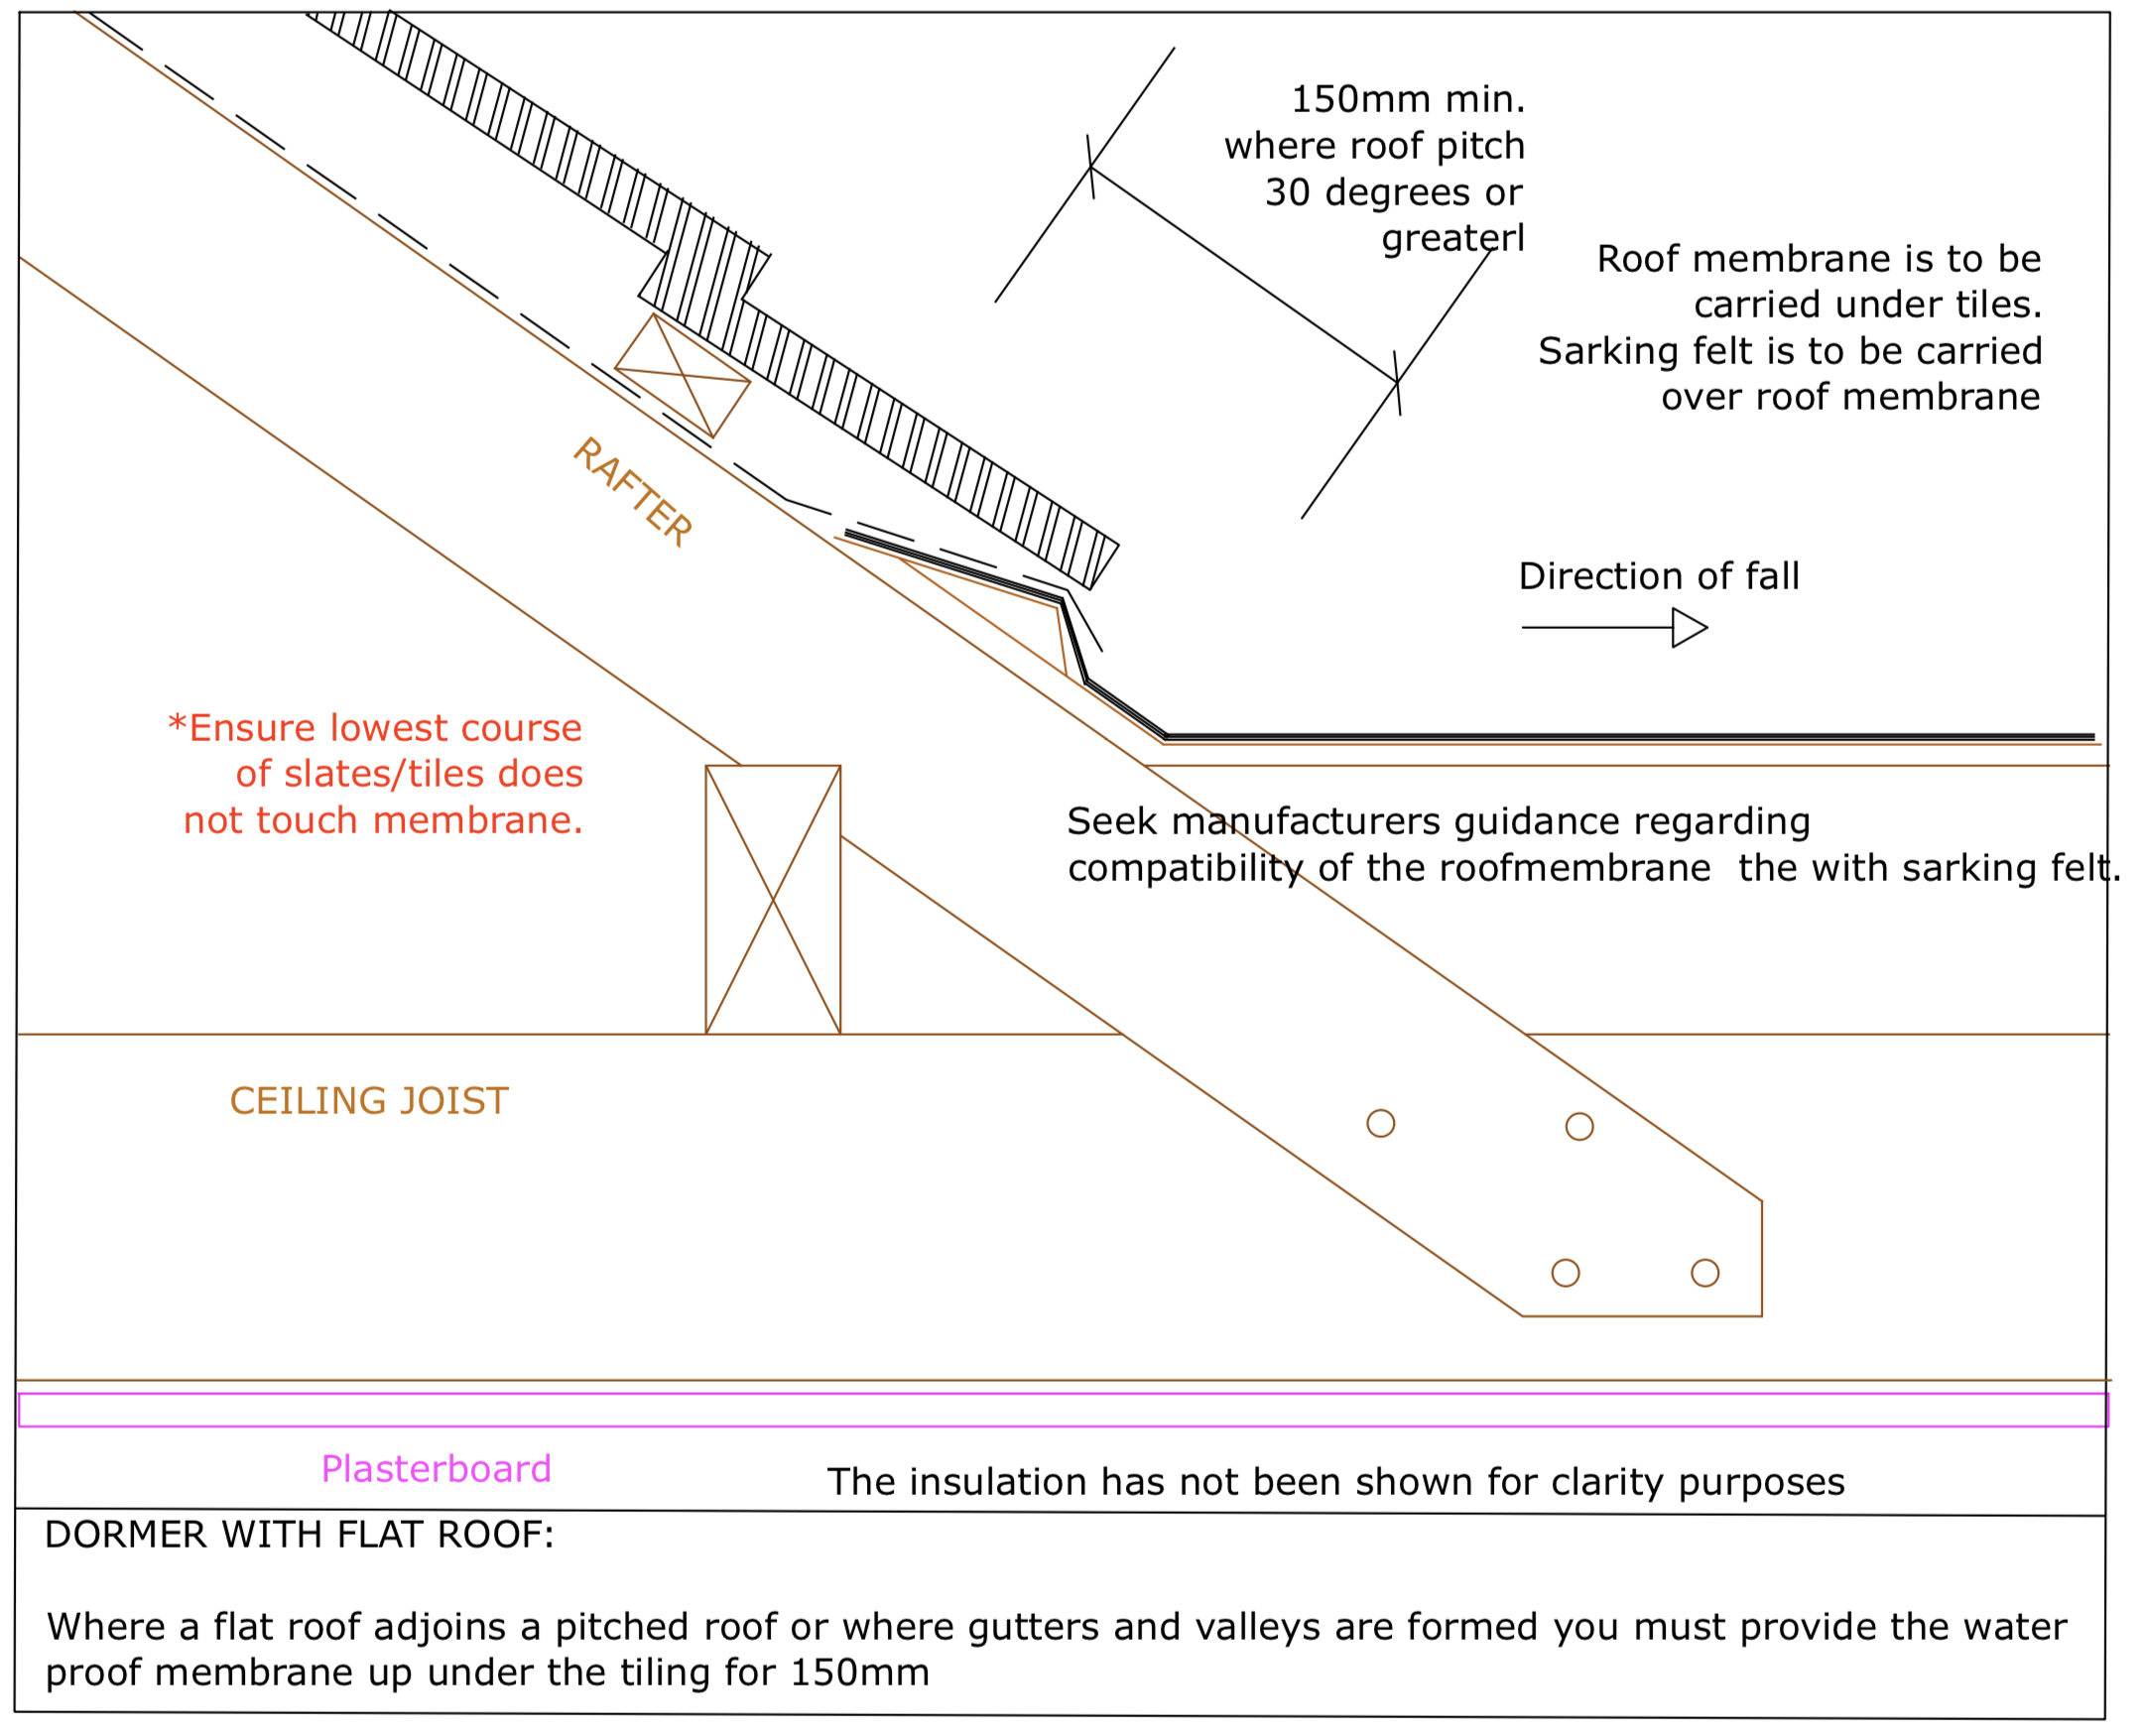 Diagram D53 - Junction of flat roof and pitched roof